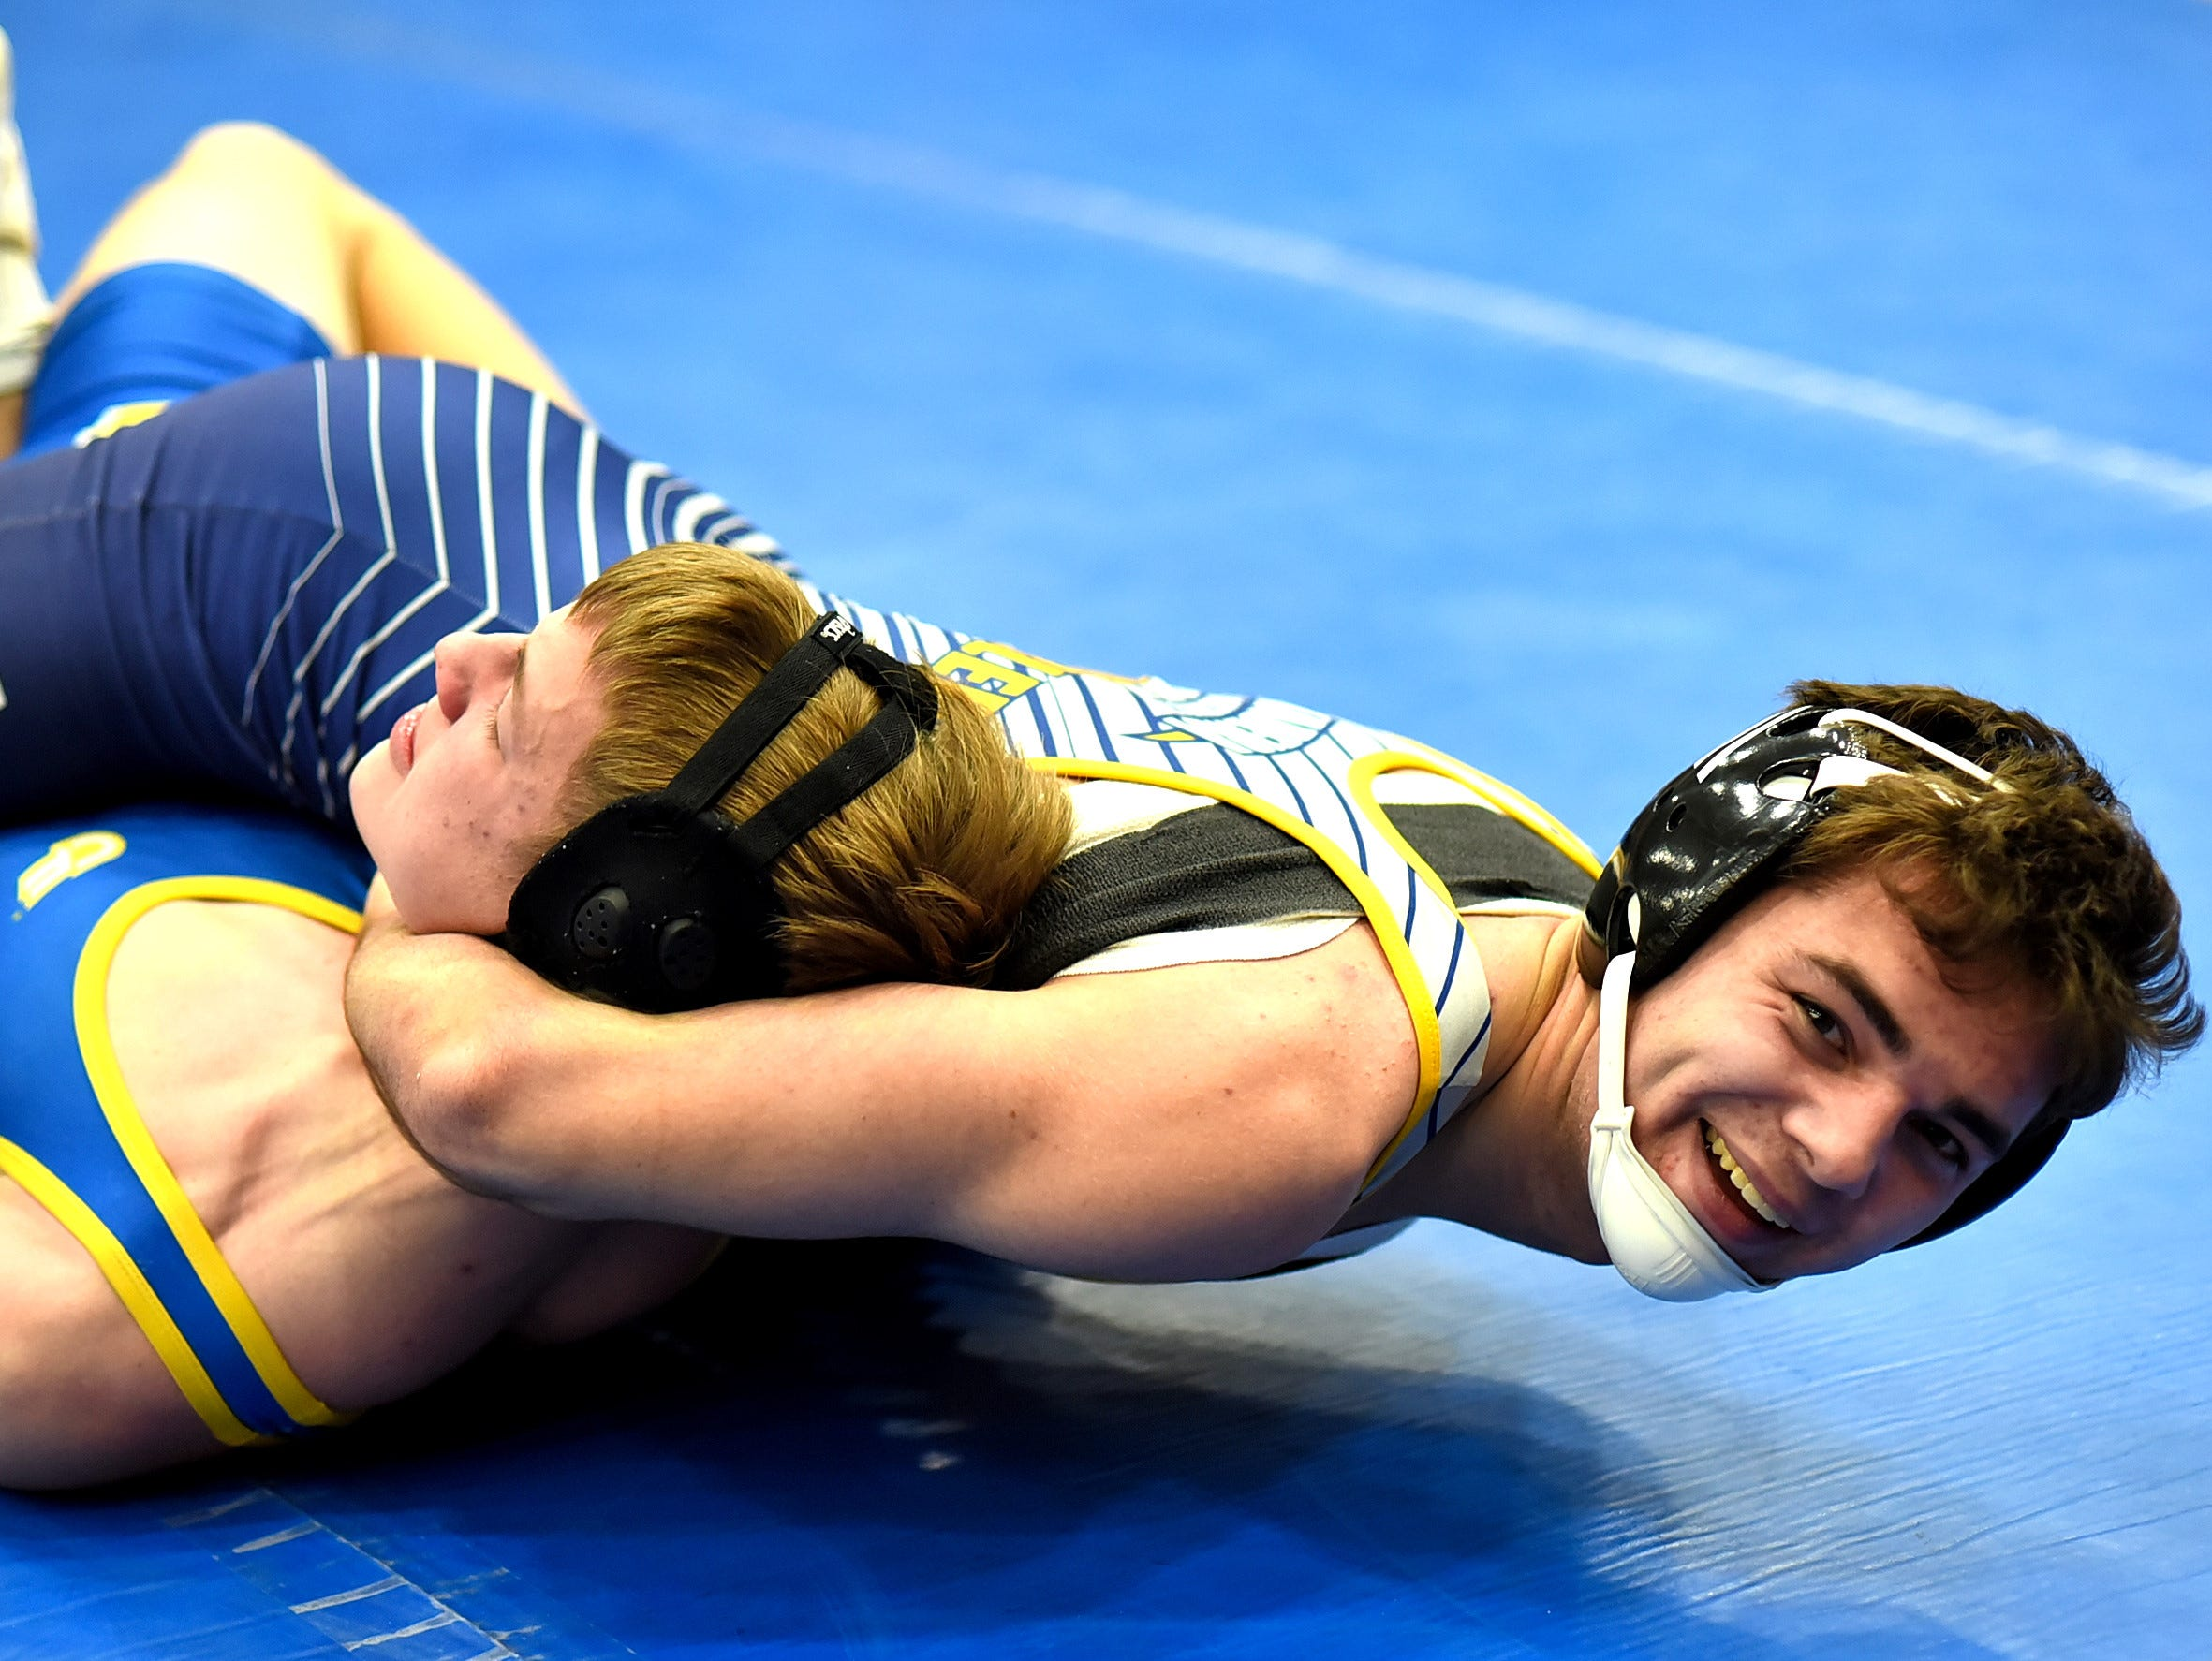 Jackson Hugentobler of Madeira is all smiles as he pins Clermont Northeastern's Jacob Groeber at the Bob Kearns Madeira Invitational, January 4, 2019.